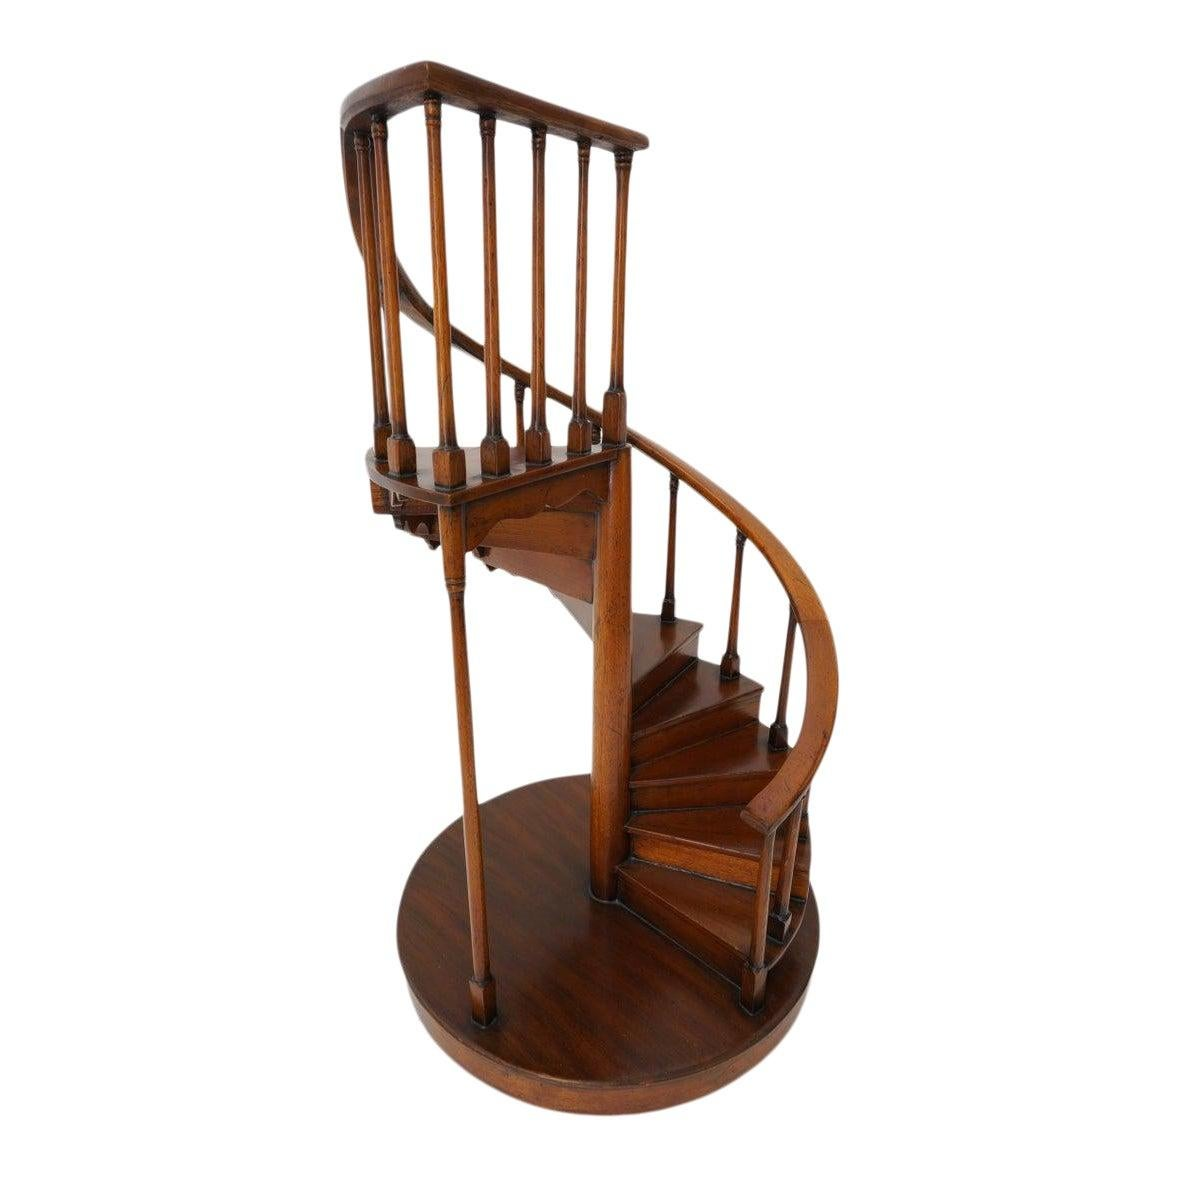 Spiral Staircase Architectural Model in Mahogany